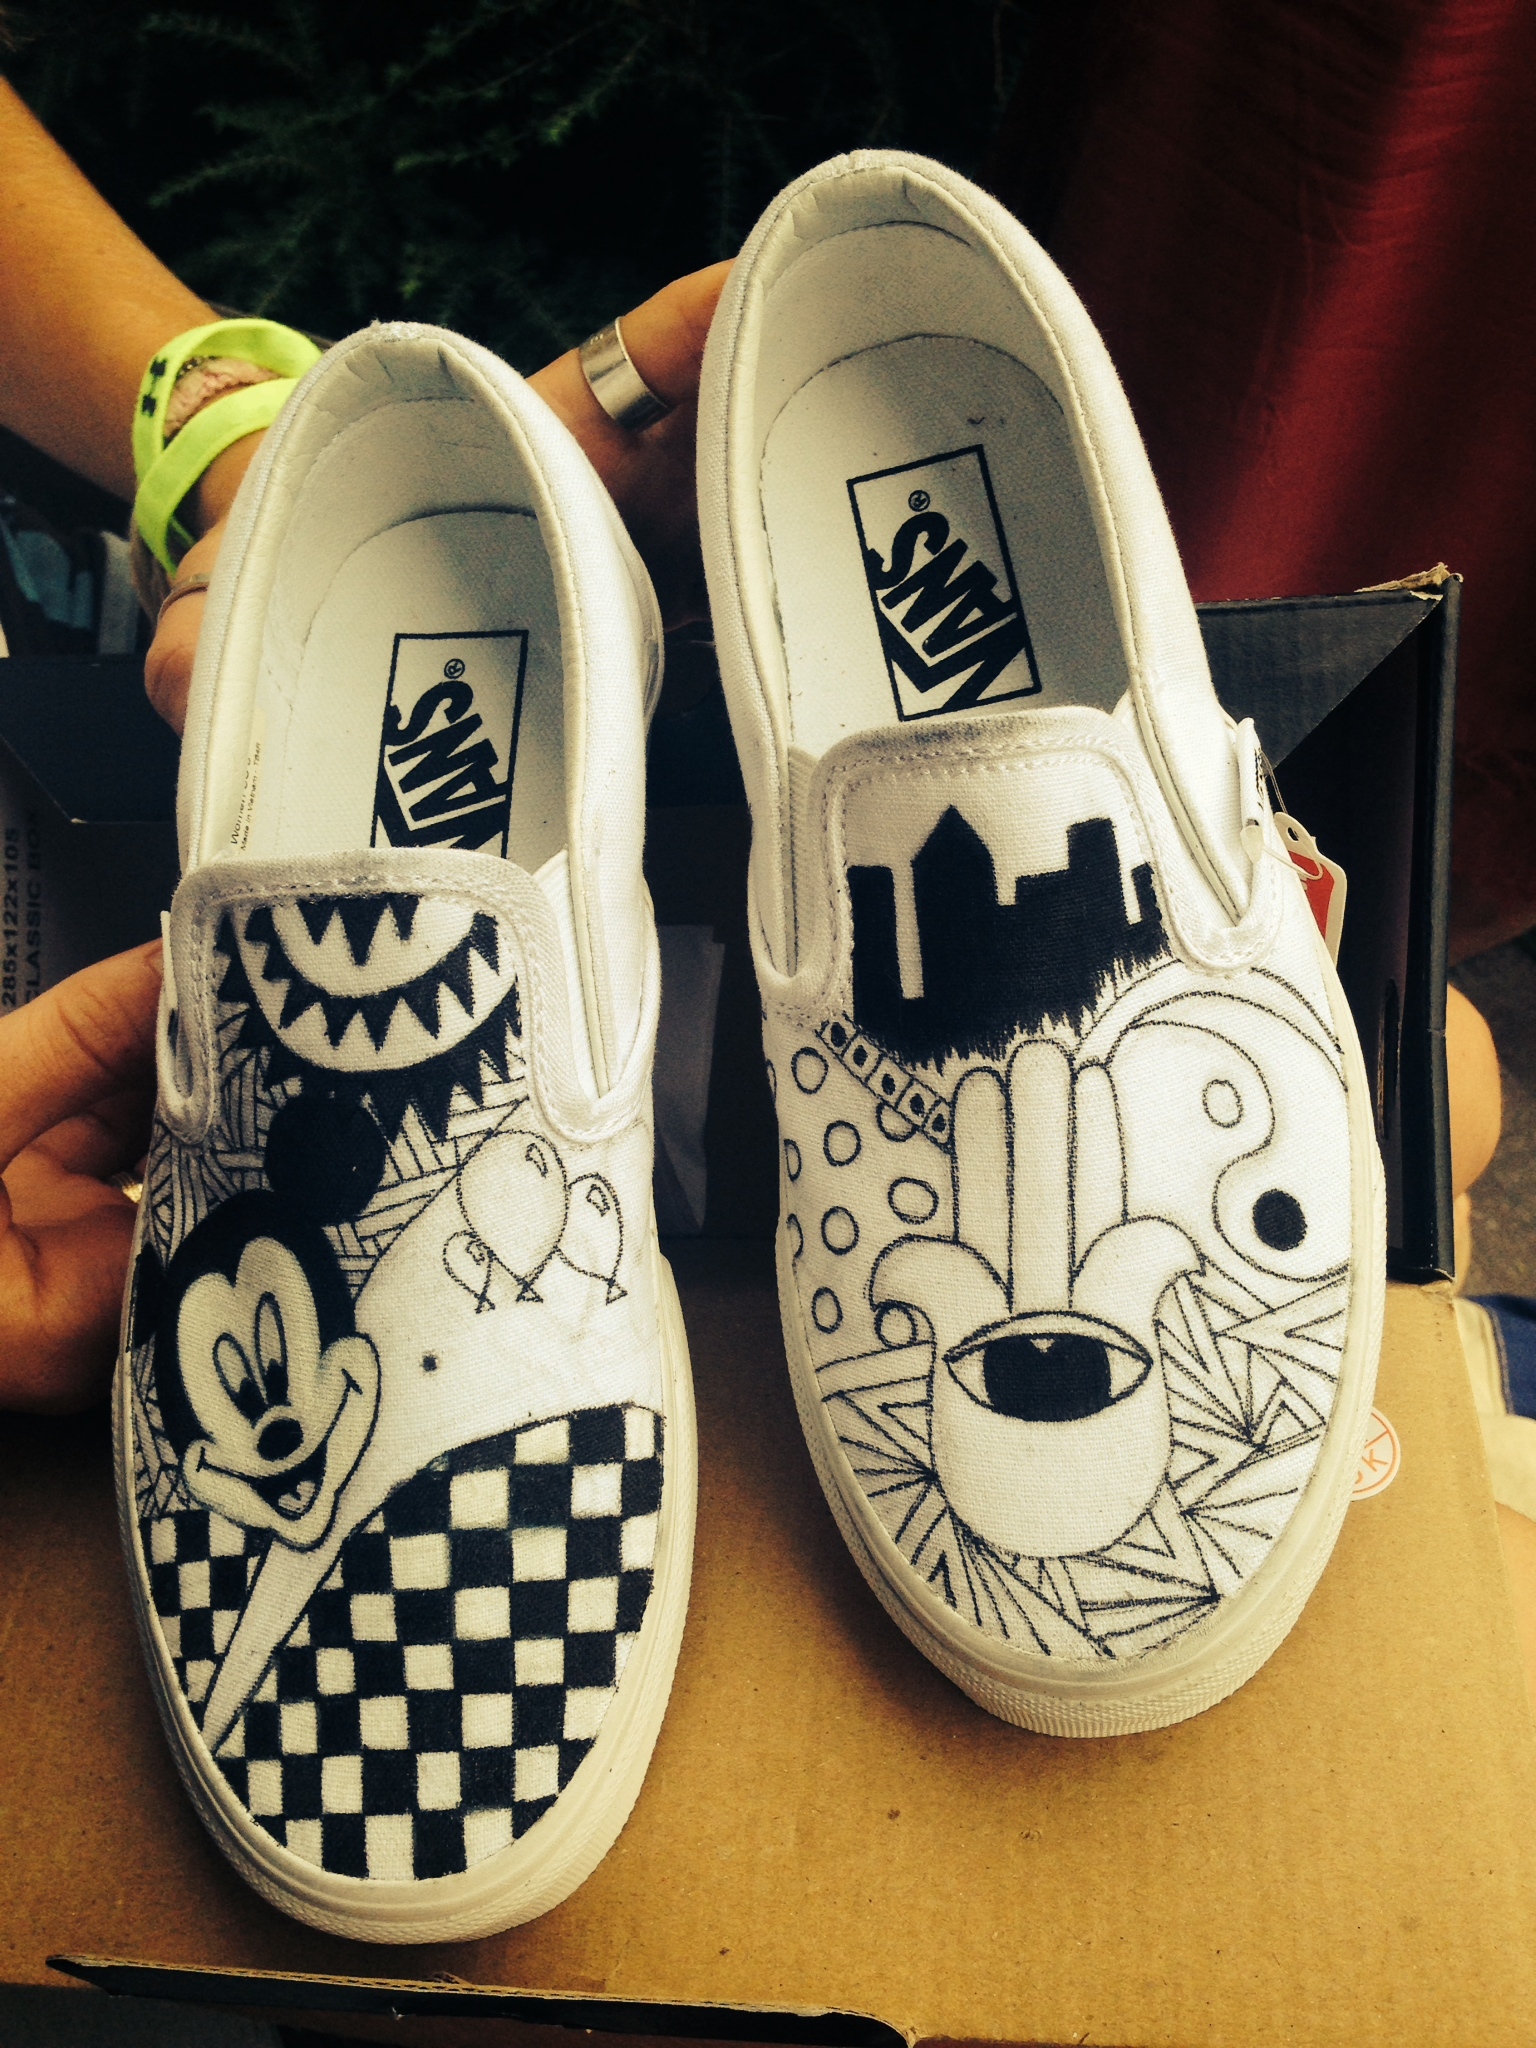 Drawn vans White Shoes — Vans and